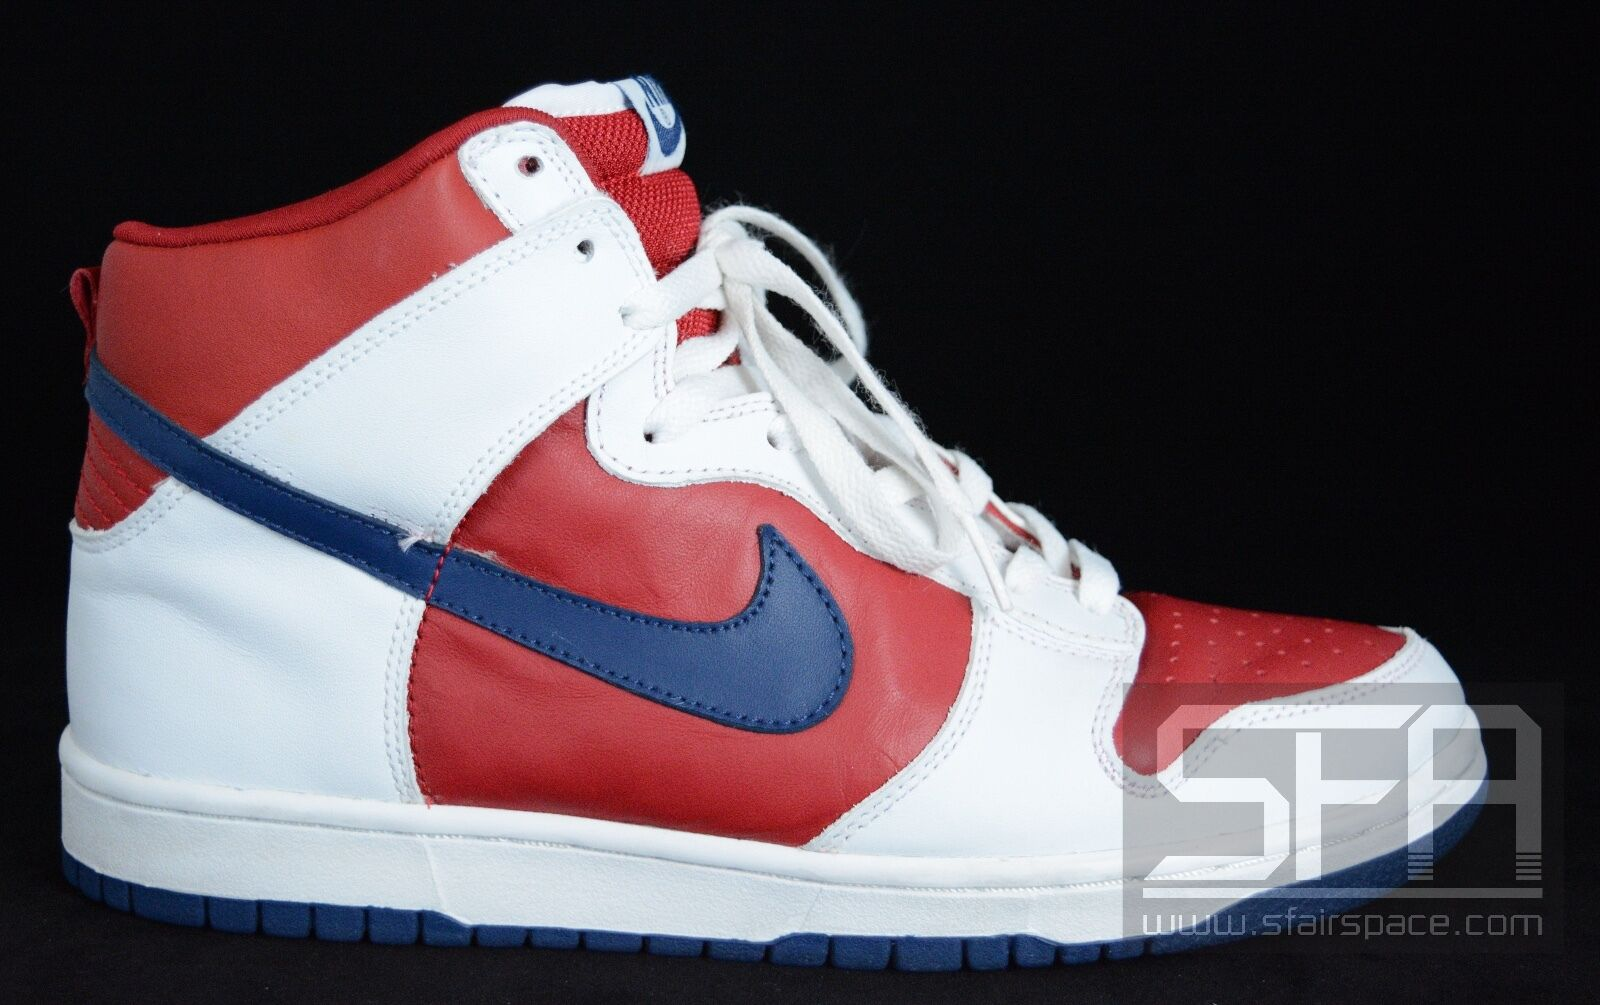 2018 NIKE DUNK HIGH LA CLIPPERS WHITE RAPID BLUE RED 305287-141 9.5 LOS ANGELES